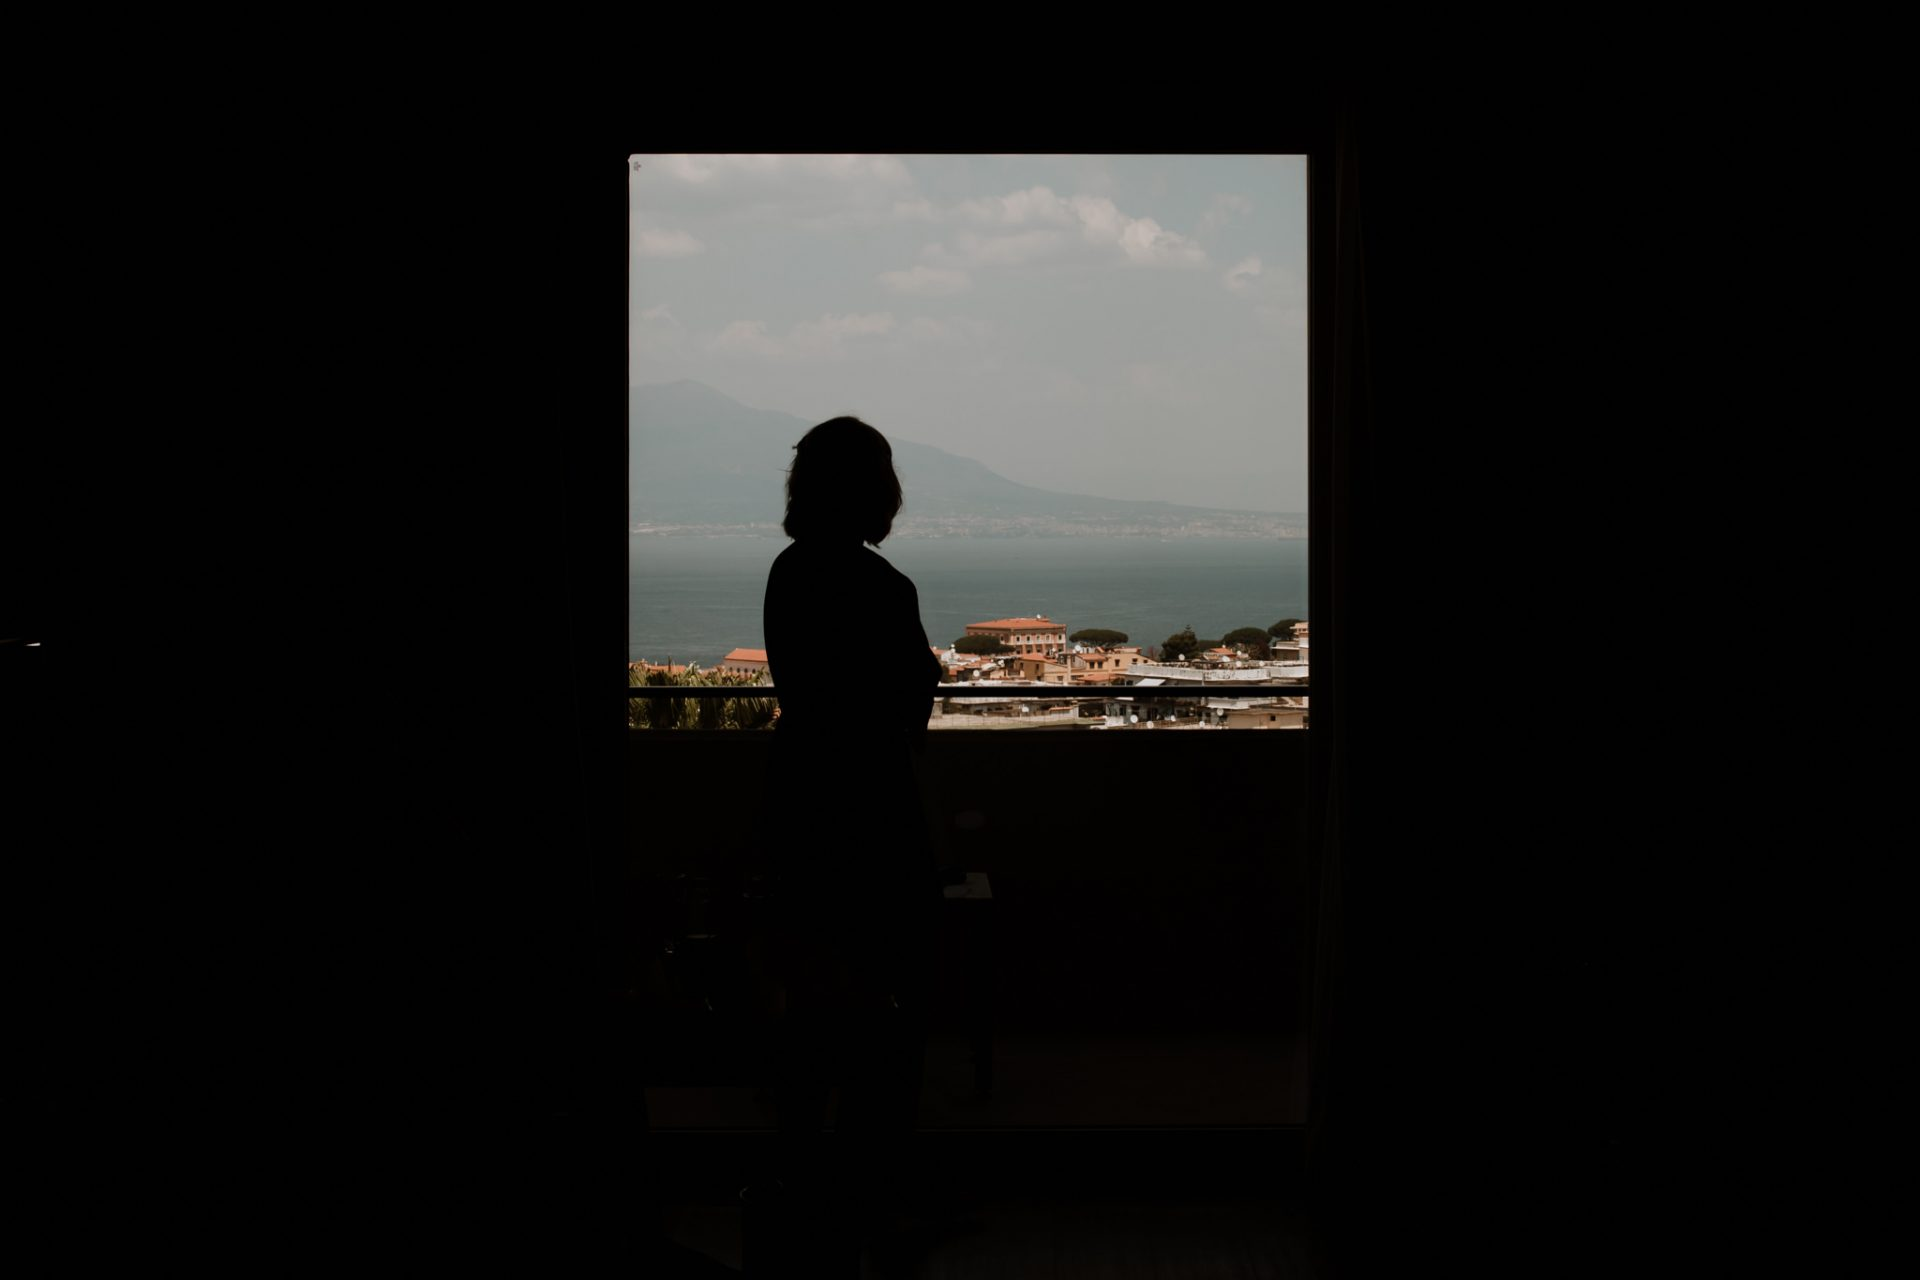 bridesmaid silhouetted in the window with a view of sorrento behind